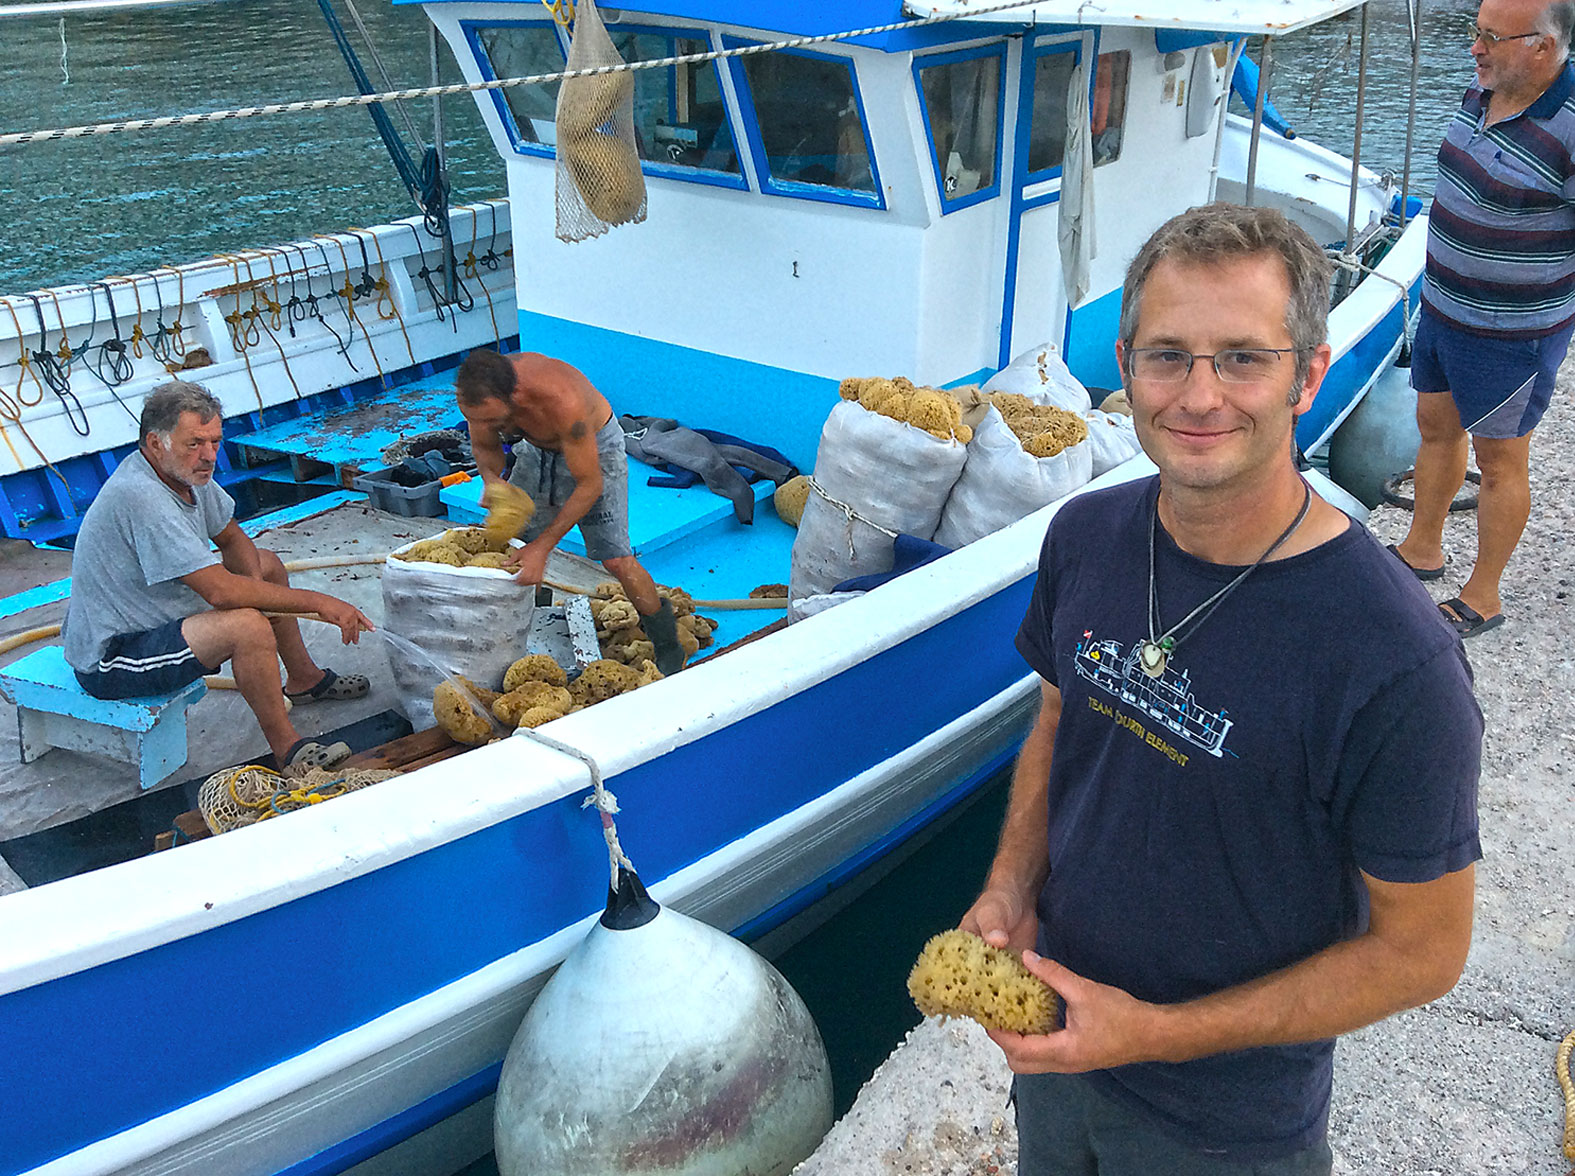 The whole dive team was excited about sponge diving techniques of the past. Here's Evan Kovacs with a locally harvested sponge to take back to the USA as a present.